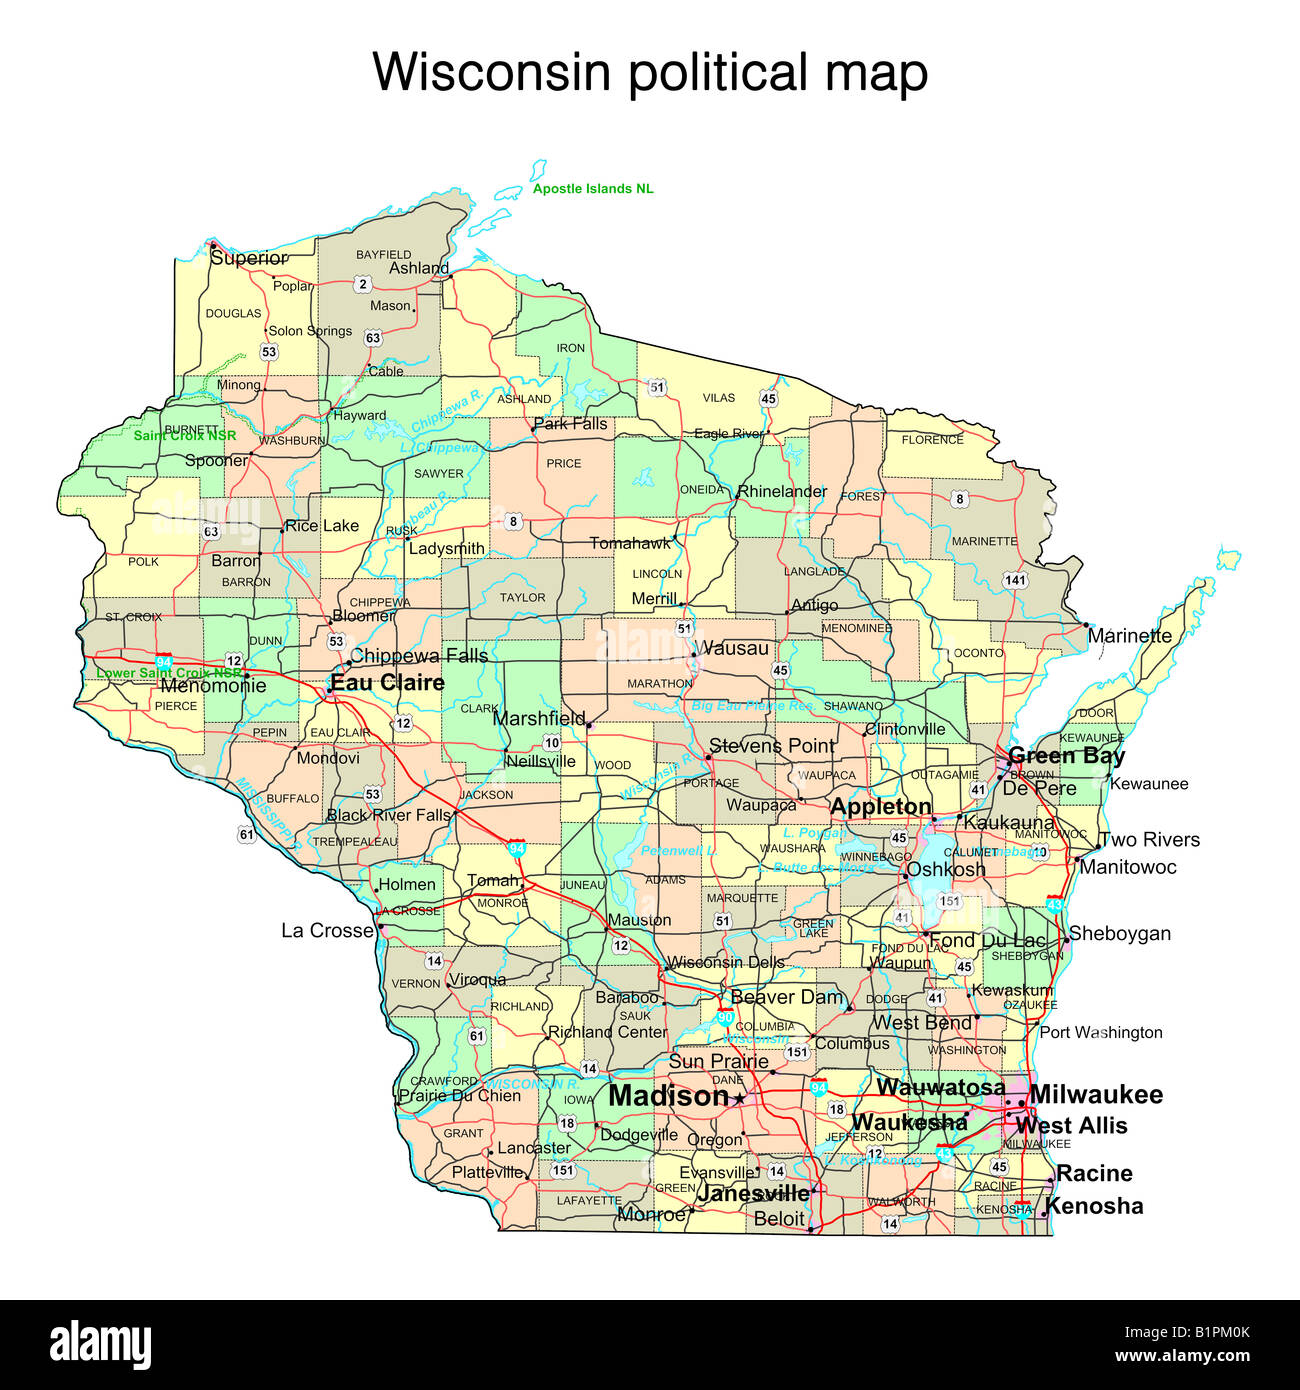 Wisconsin state political map Stock Photo: 18323667 - Alamy on albany state map, green state map, iowa state map, oakland state map, arlington state map, corpus christi state map, oshkosh state map, galveston state map, billings state map, rochester state map, scranton state map, harvard state map, dayton state map, montgomery state map, lake county state map, tulsa state map, peoria state map, spokane state map, aurora state map, allentown state map,